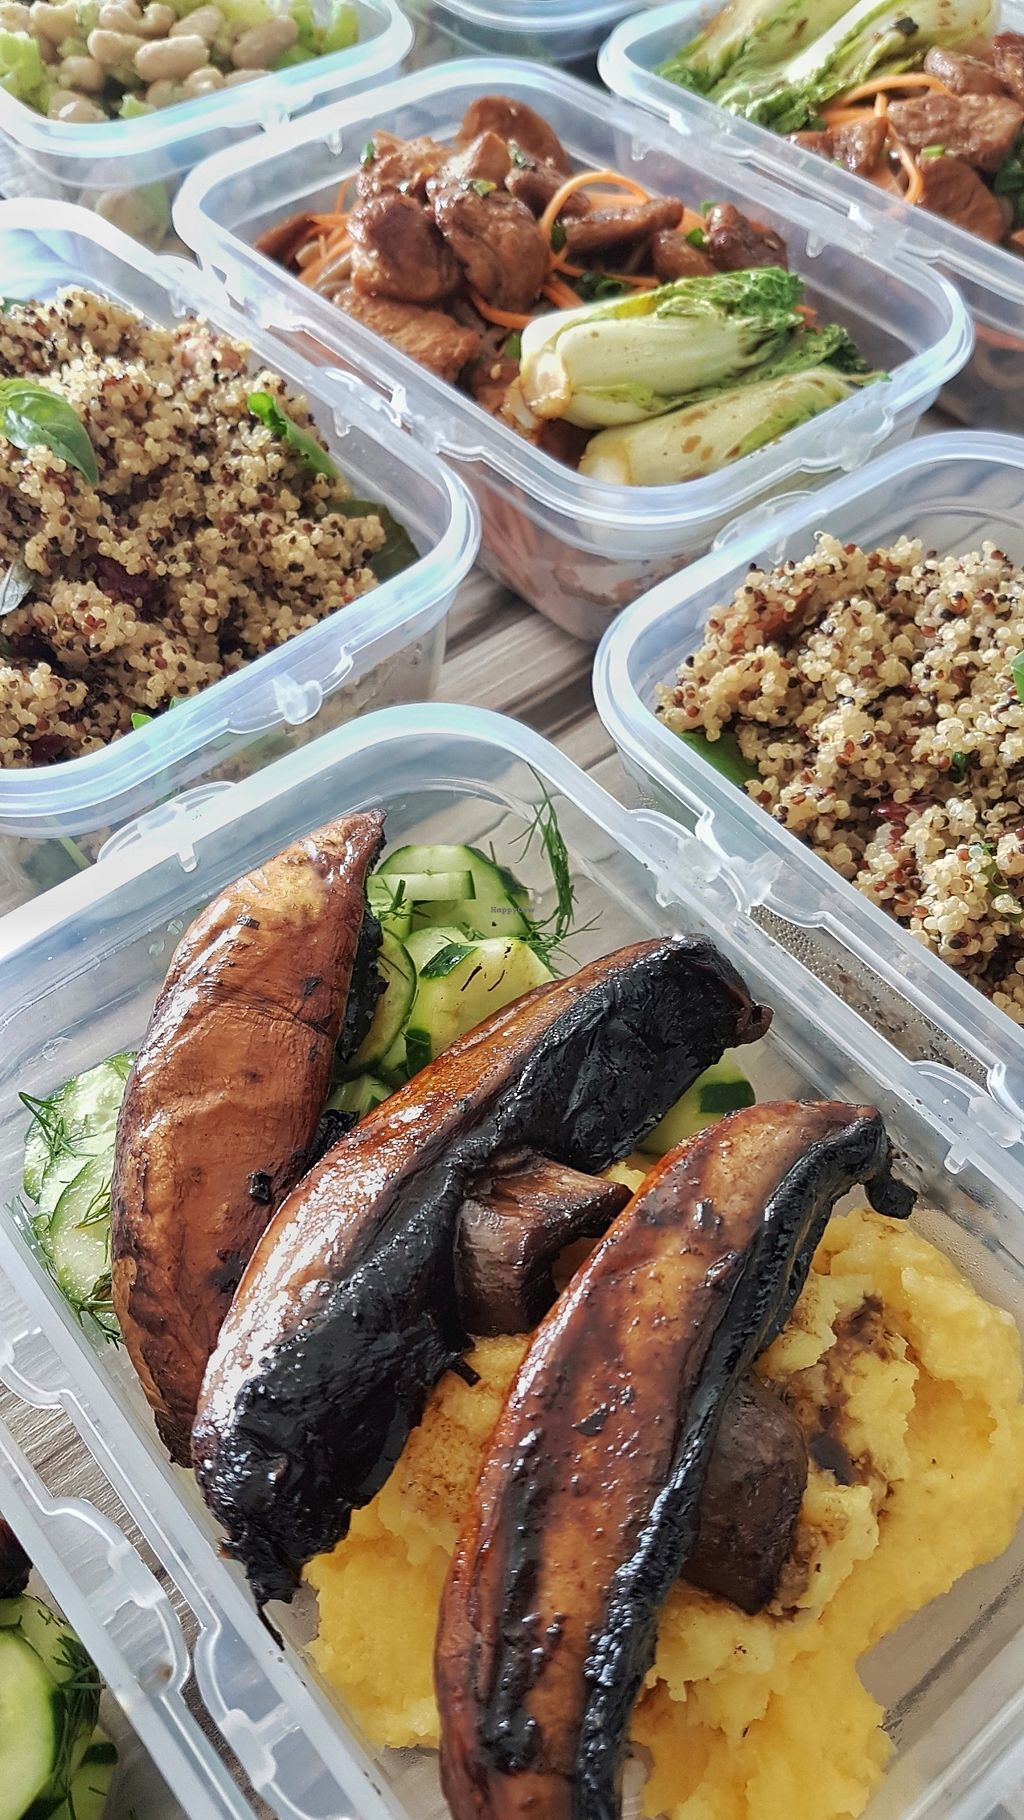 """Photo of Vegan Crush Food Delivery  by <a href=""""/members/profile/VeganCrush"""">VeganCrush</a> <br/>Colorful and healthy meals freshly prepared and delivered to you every Monday.  <br/> December 17, 2017  - <a href='/contact/abuse/image/107331/336445'>Report</a>"""